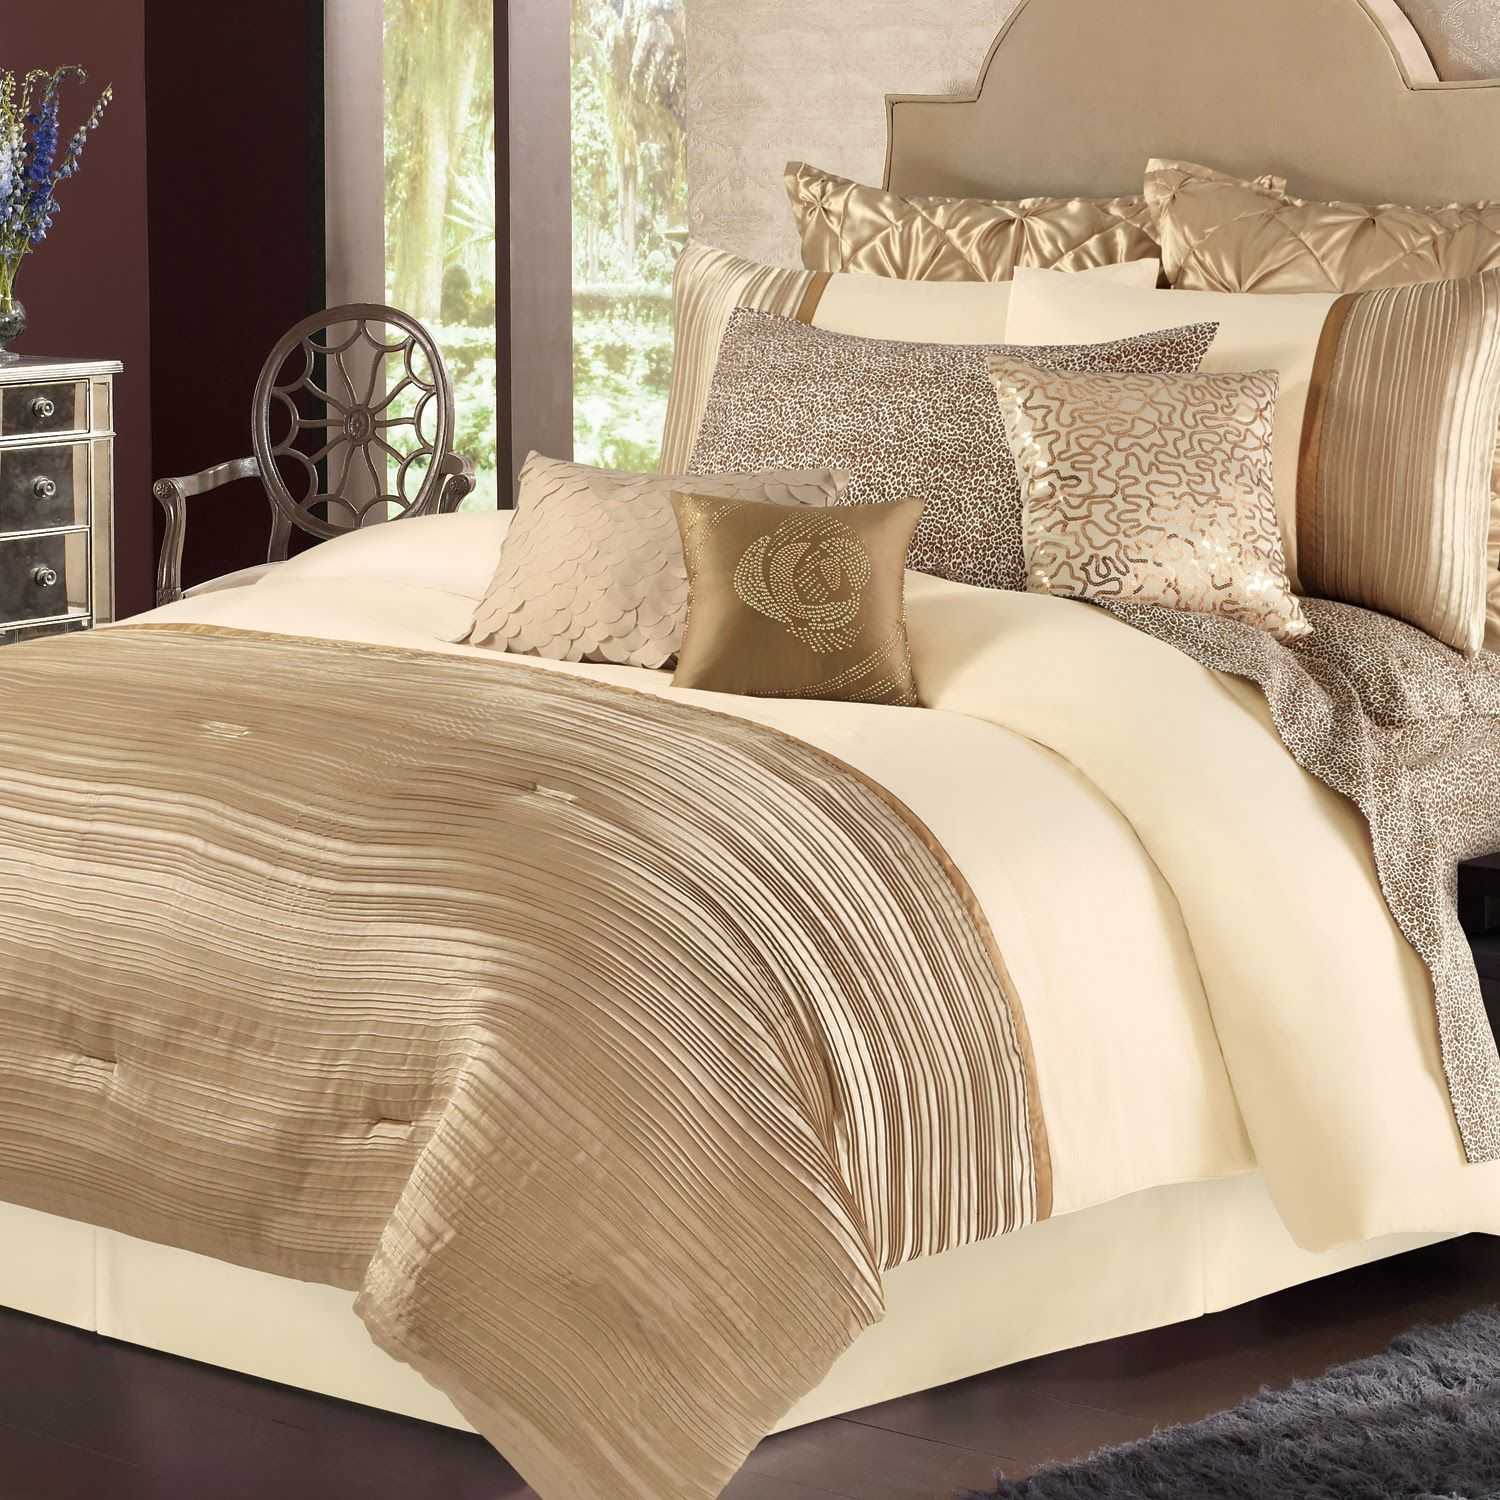 gold and bronze themed bedrooms - Google Search | Bedroom ...